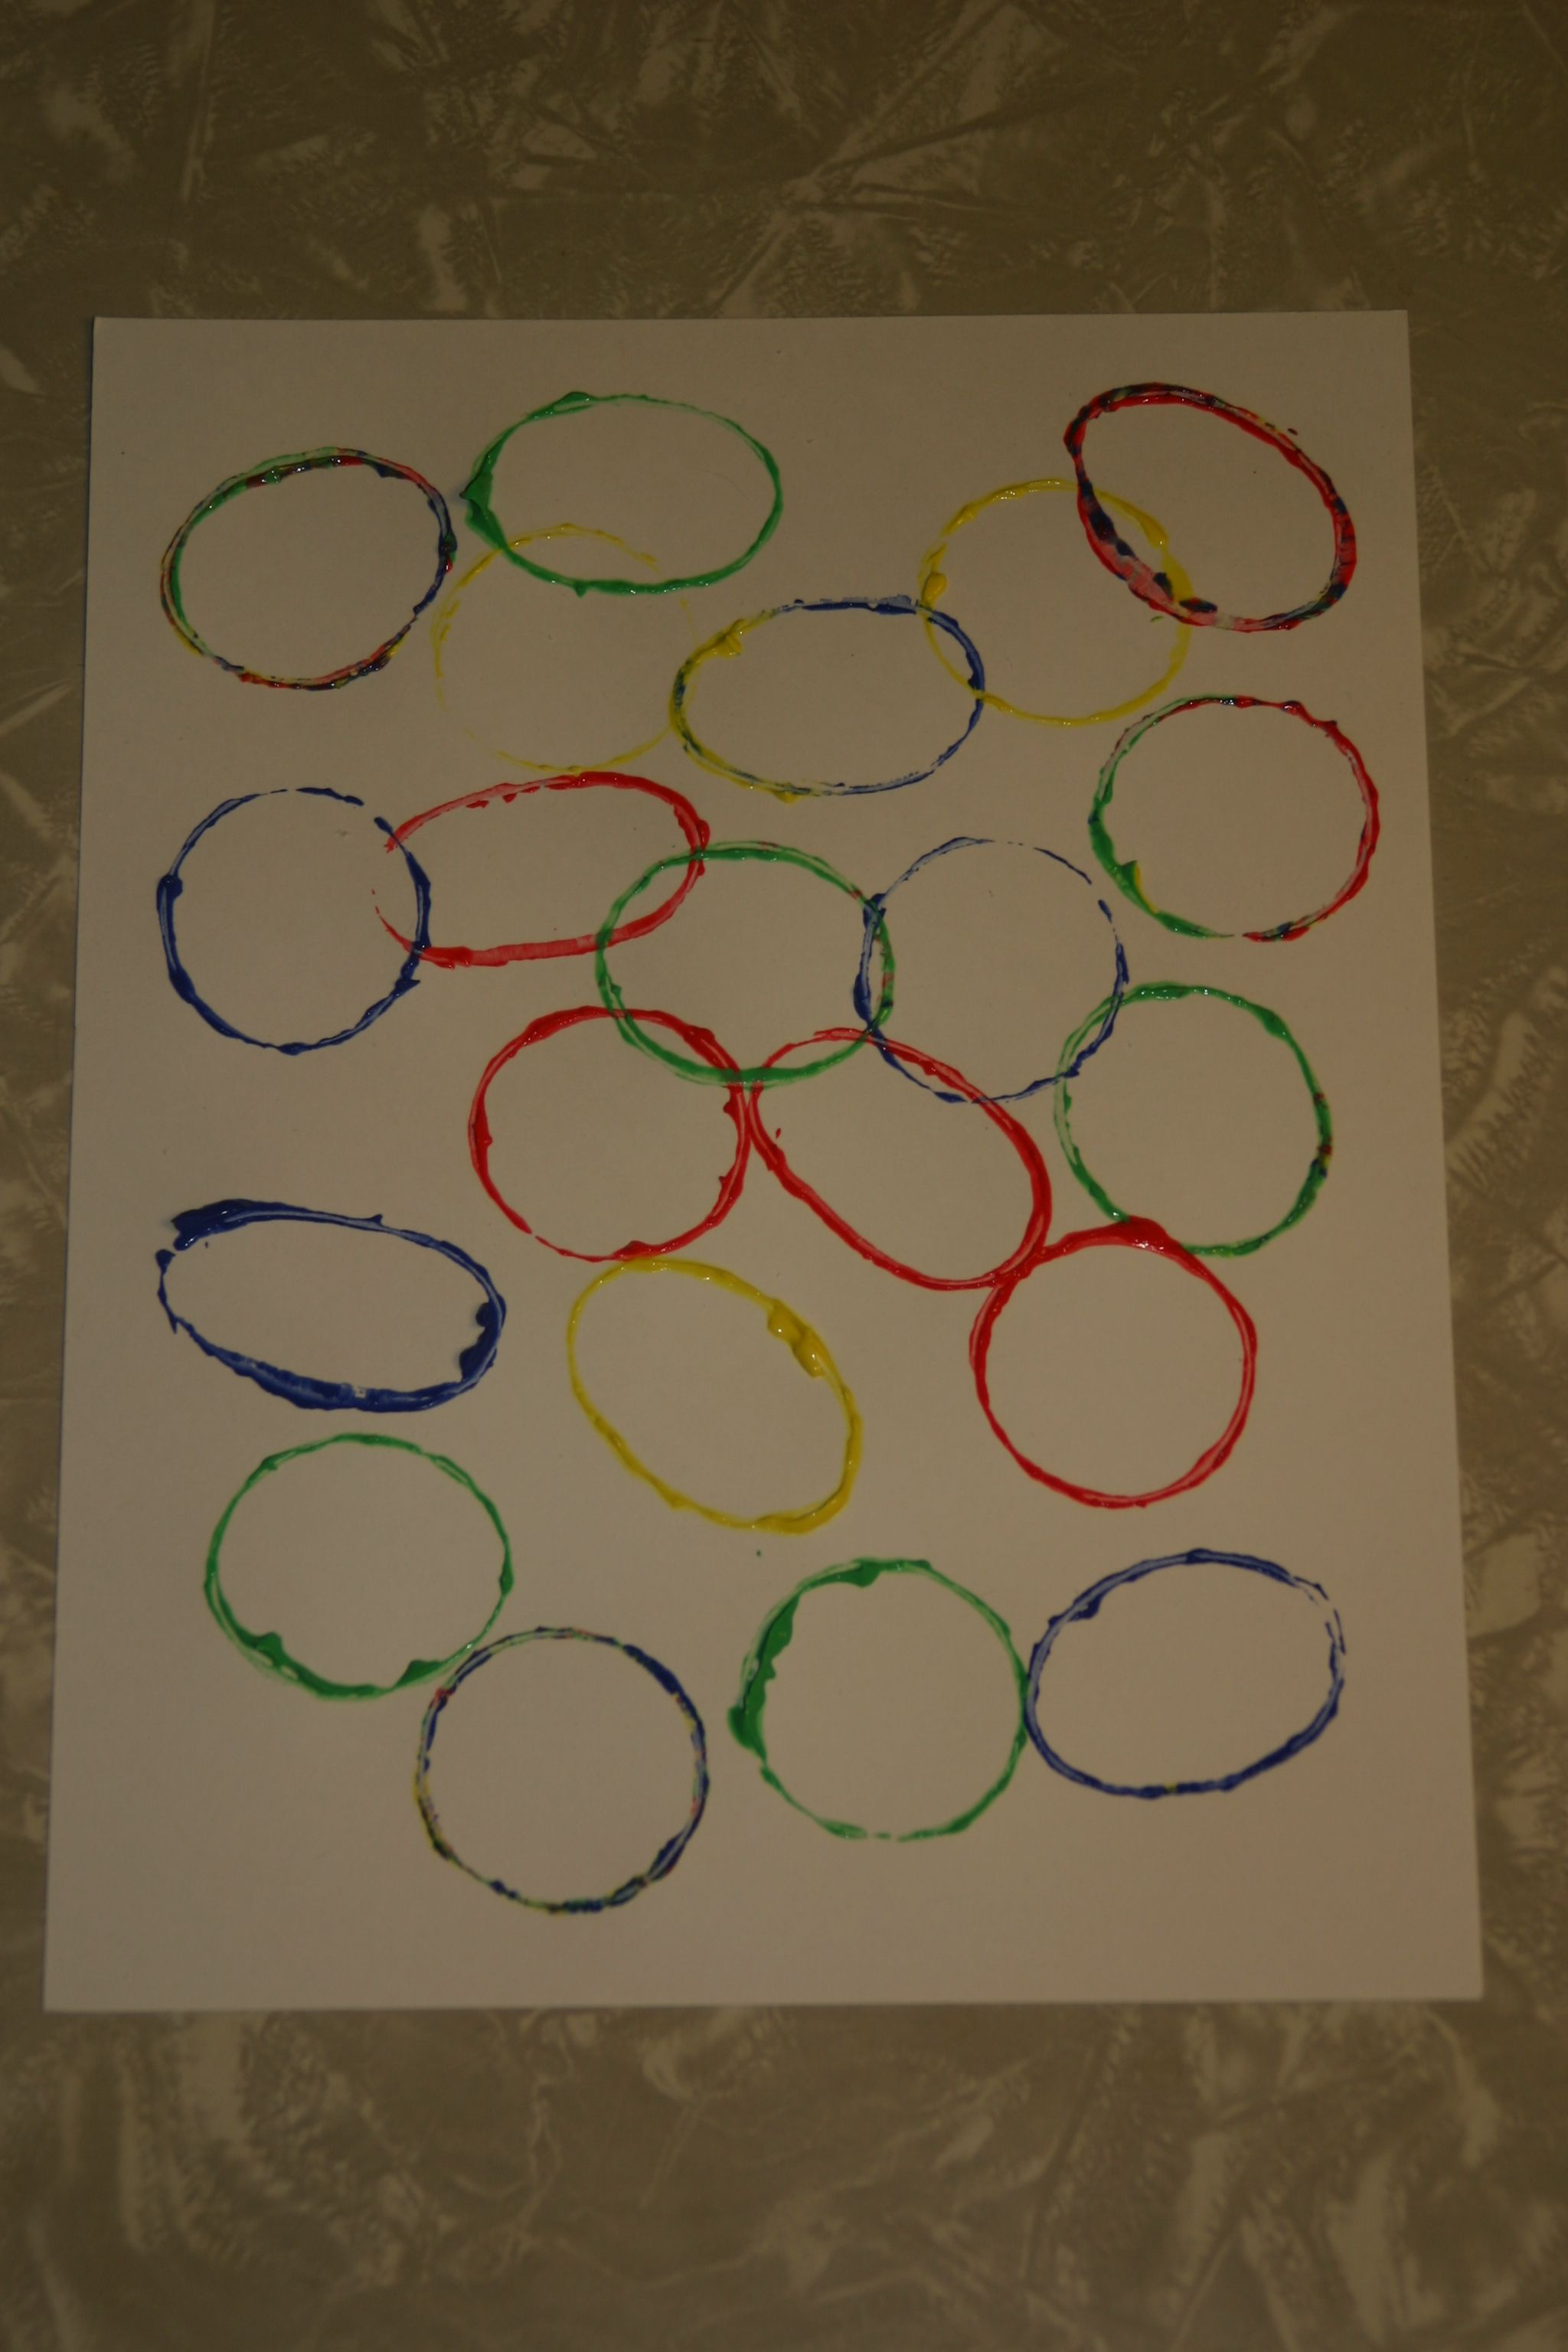 Your Child Will Learn The Relationship Between Circles And Ovals With This Simple Craft